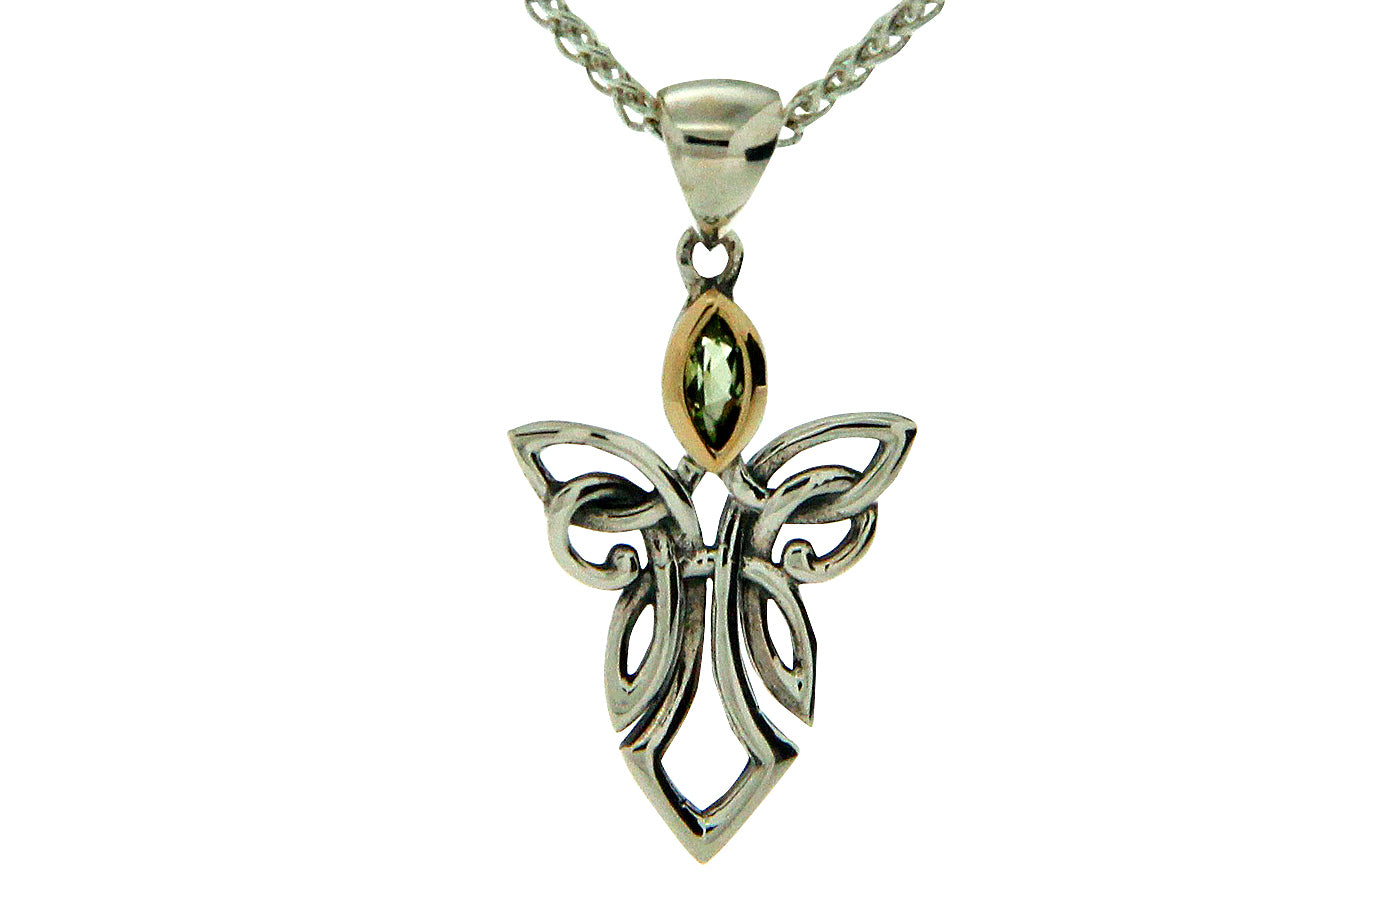 Small Silver Guardian Angel Necklace With Gem By Keith